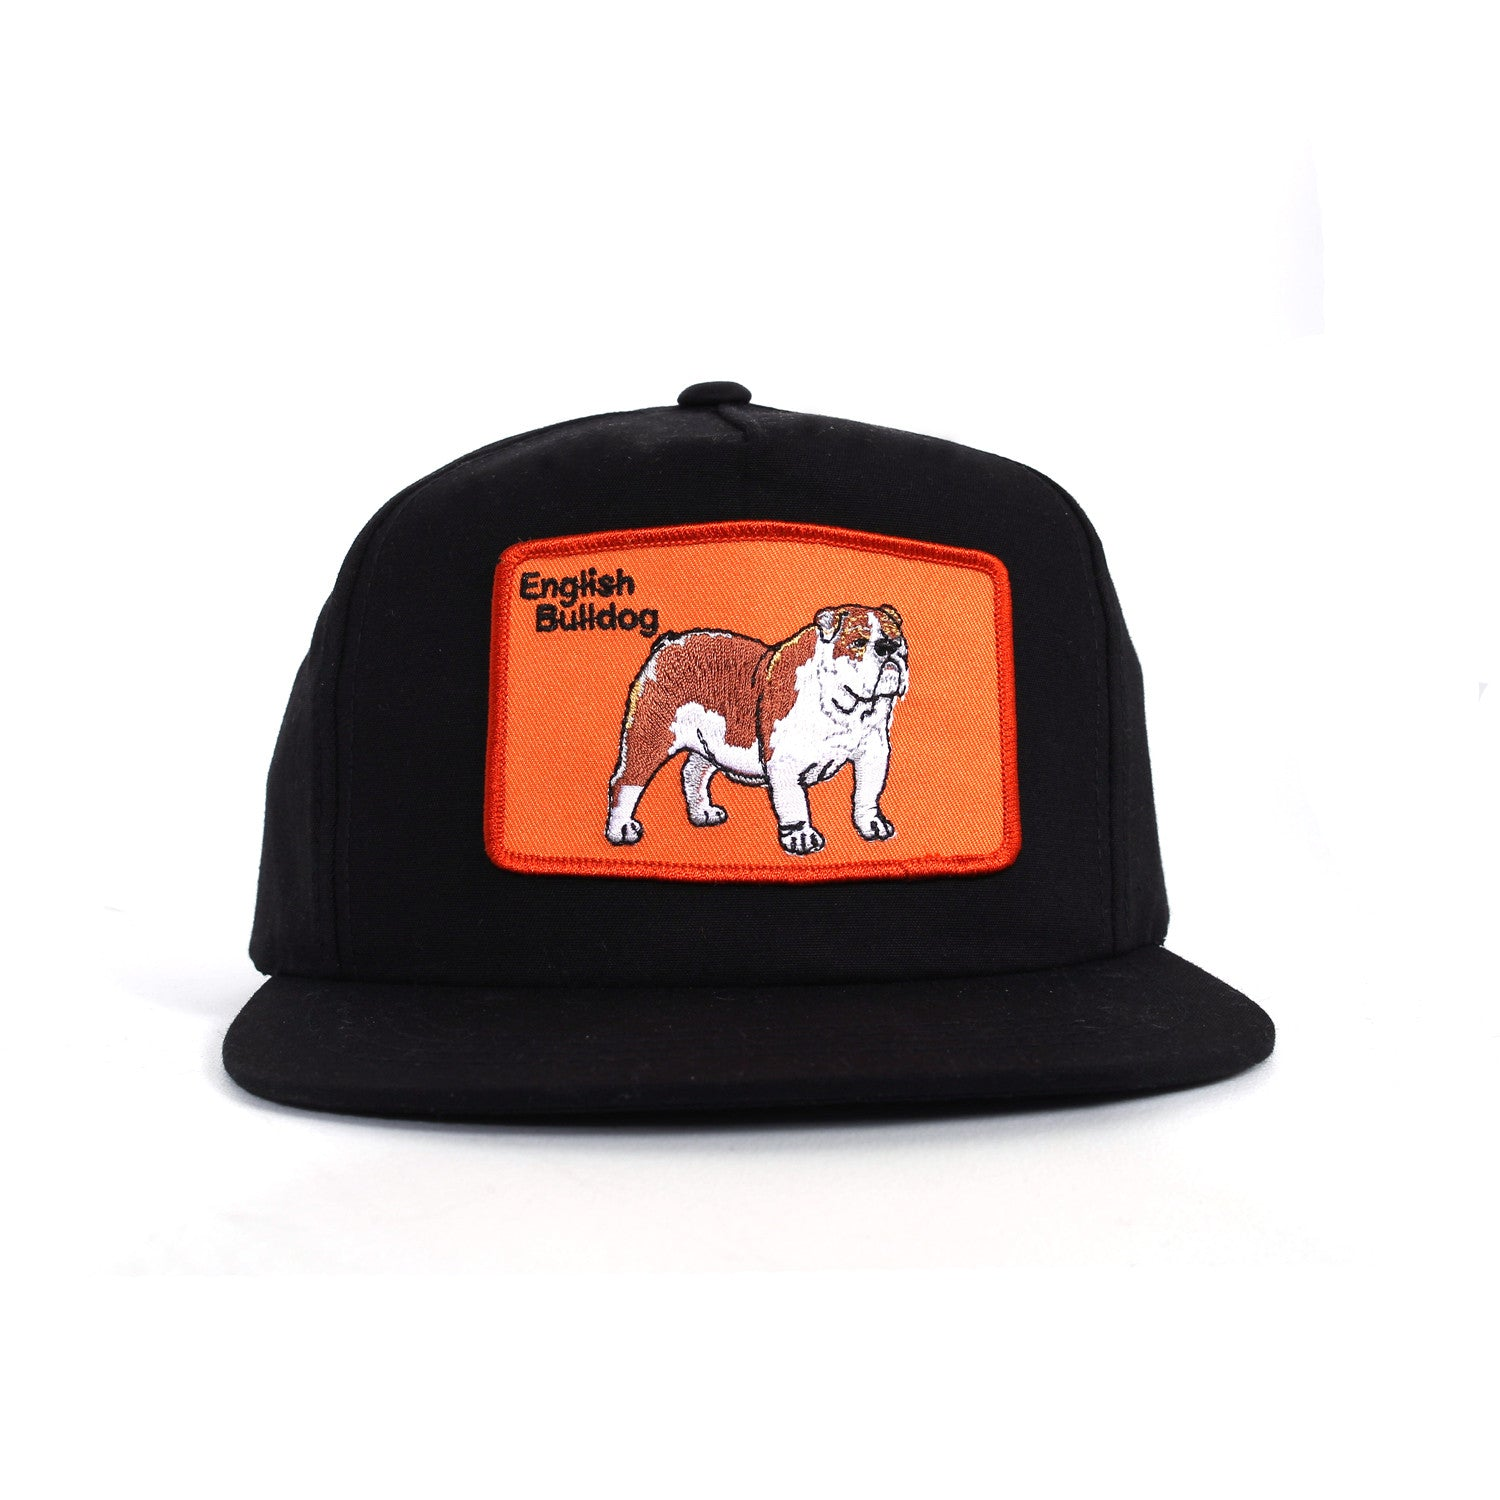 English Bulldog Snapback